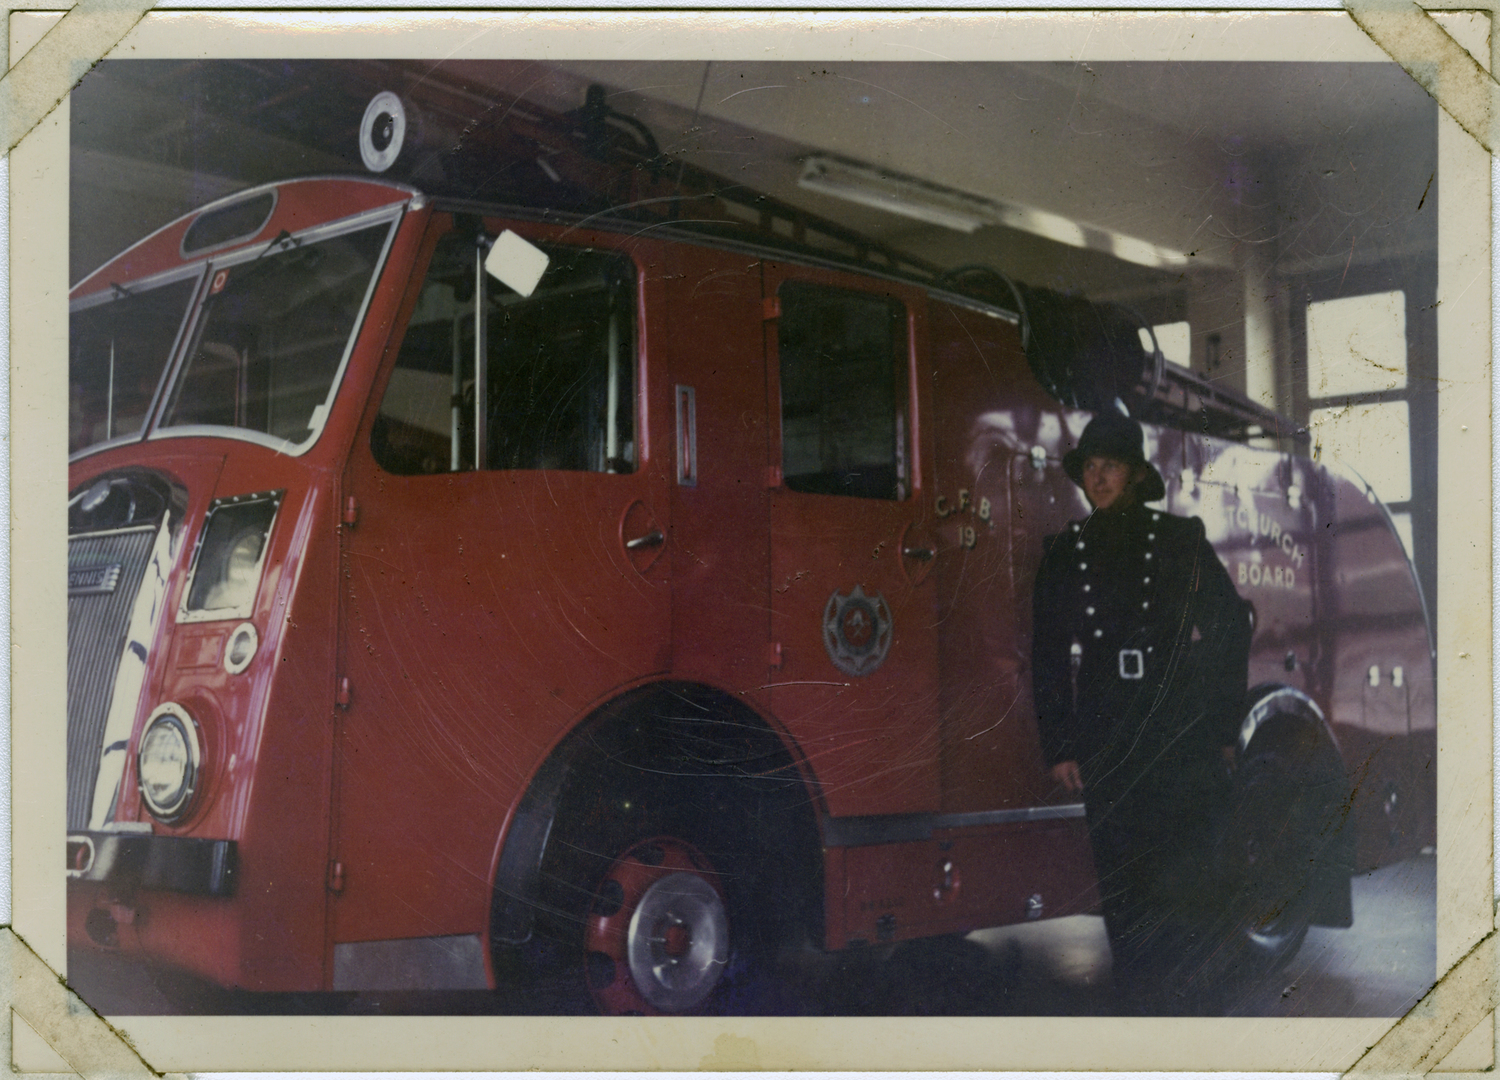 Fire engine at the Central Fire Station. 29 October 1964. Christchurch City Libraries Photo Hunt. CC BY-NC-ND 4.0. CCL-PH20-075